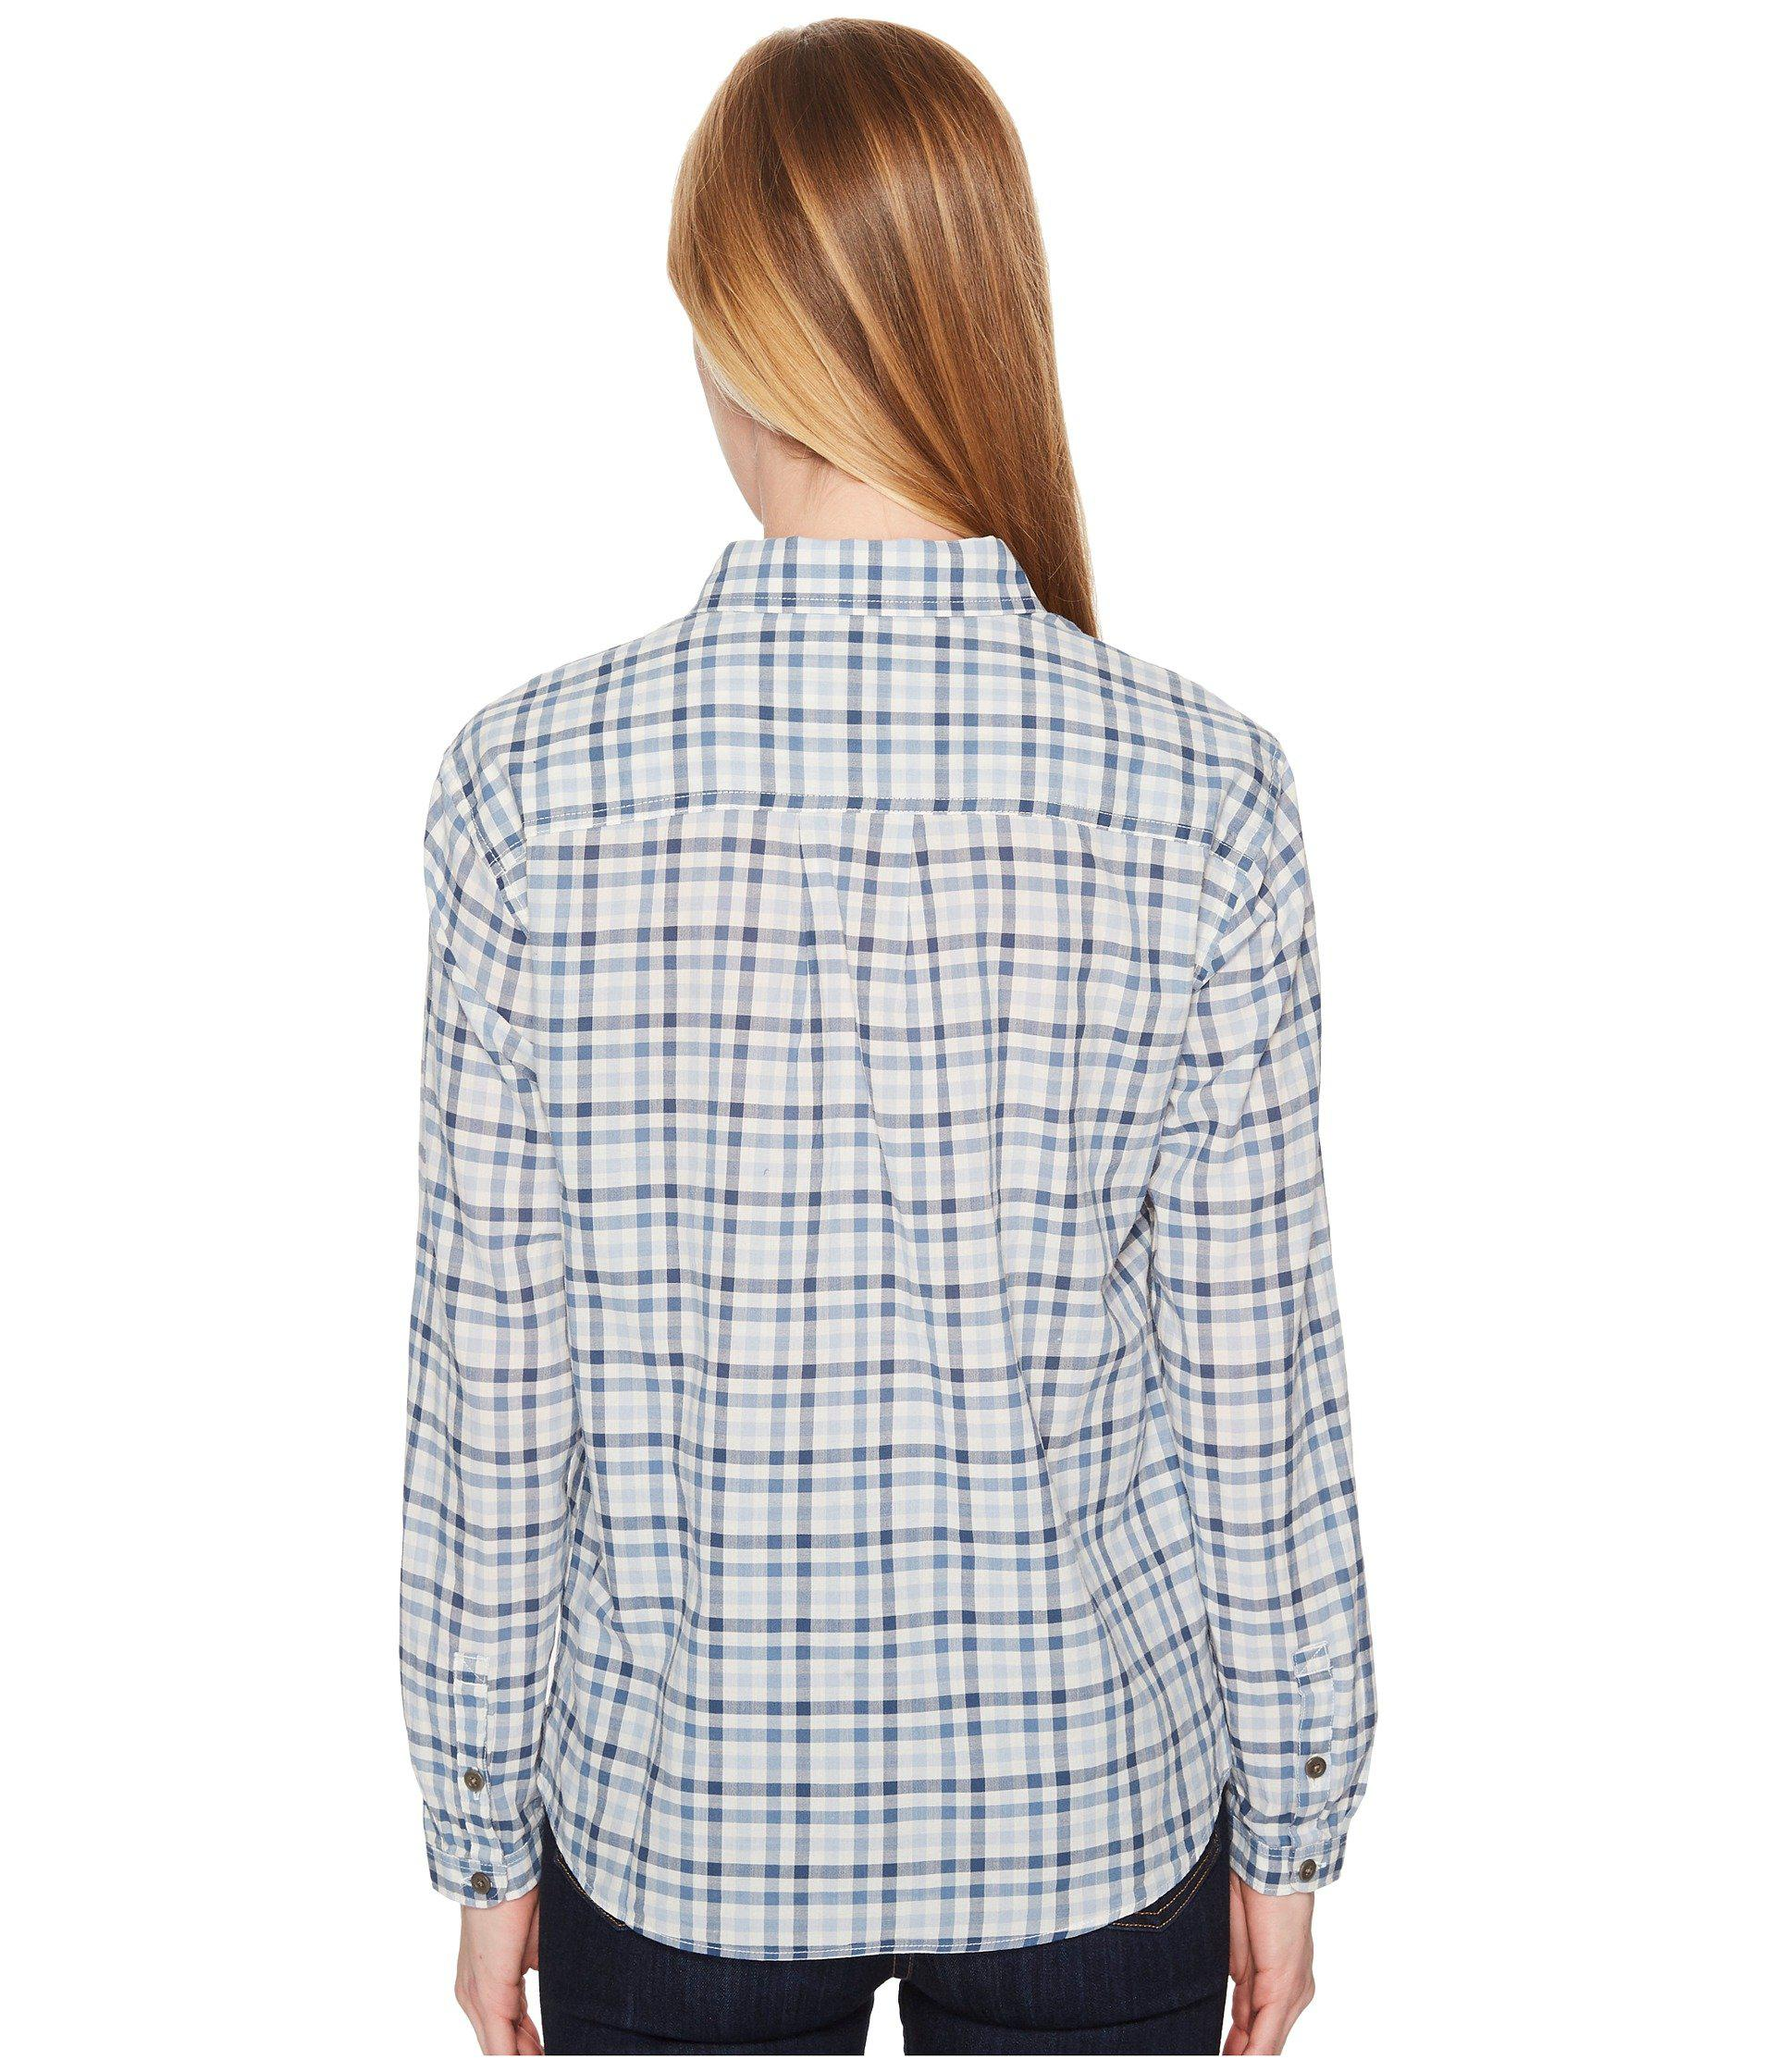 d1af7f33c The North Face Barilles Pullover Shirt (dusty Blue Gingham) Long Sleeve  Button Up